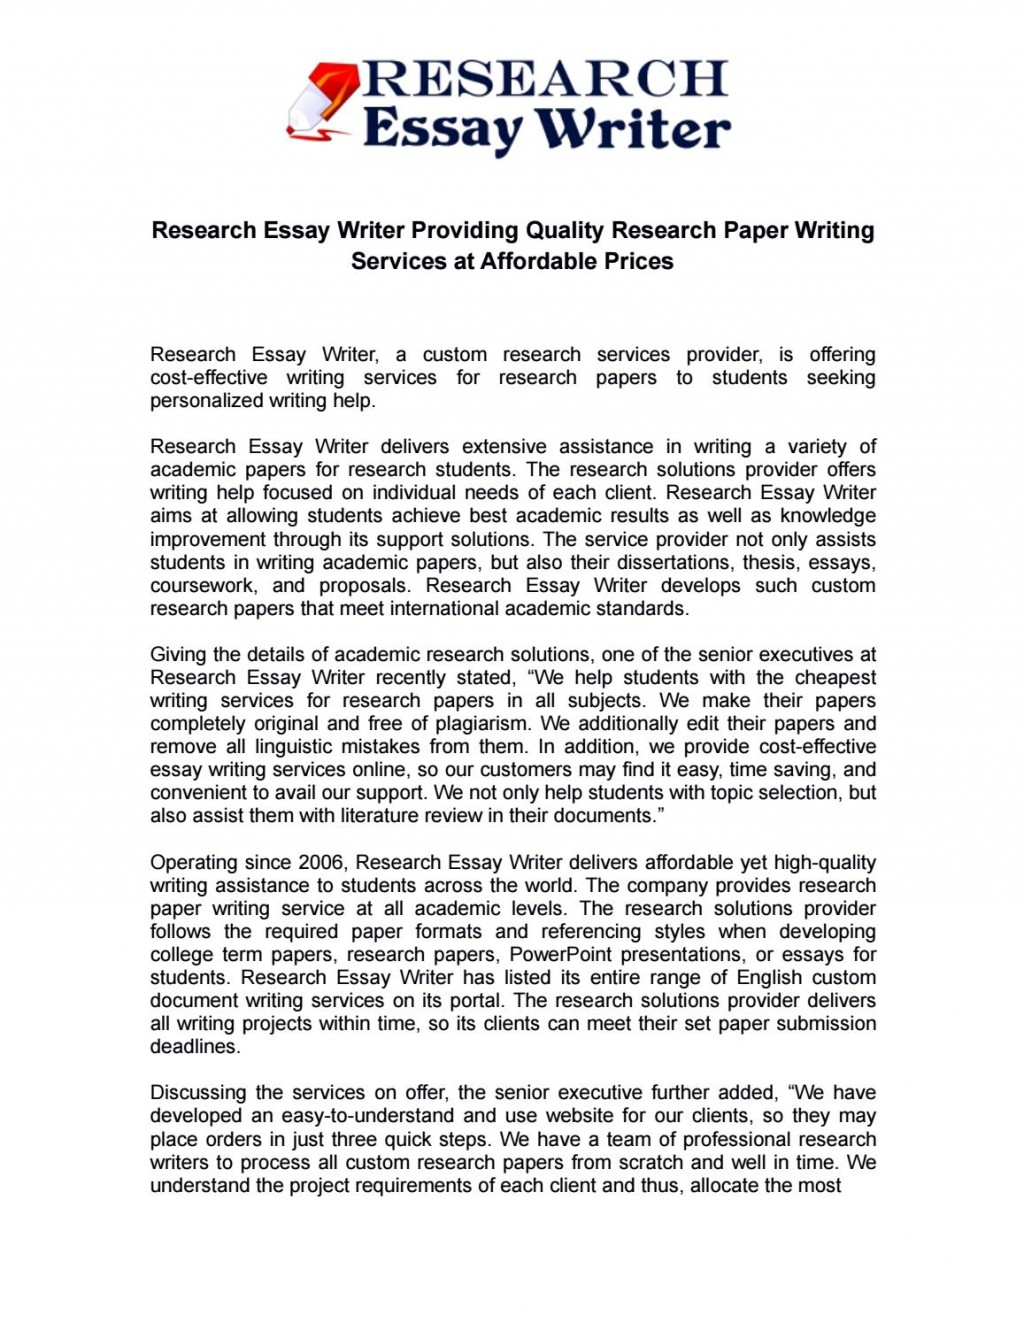 007 Cheapest Research Paper Writing Service Page 1 Wondrous Large